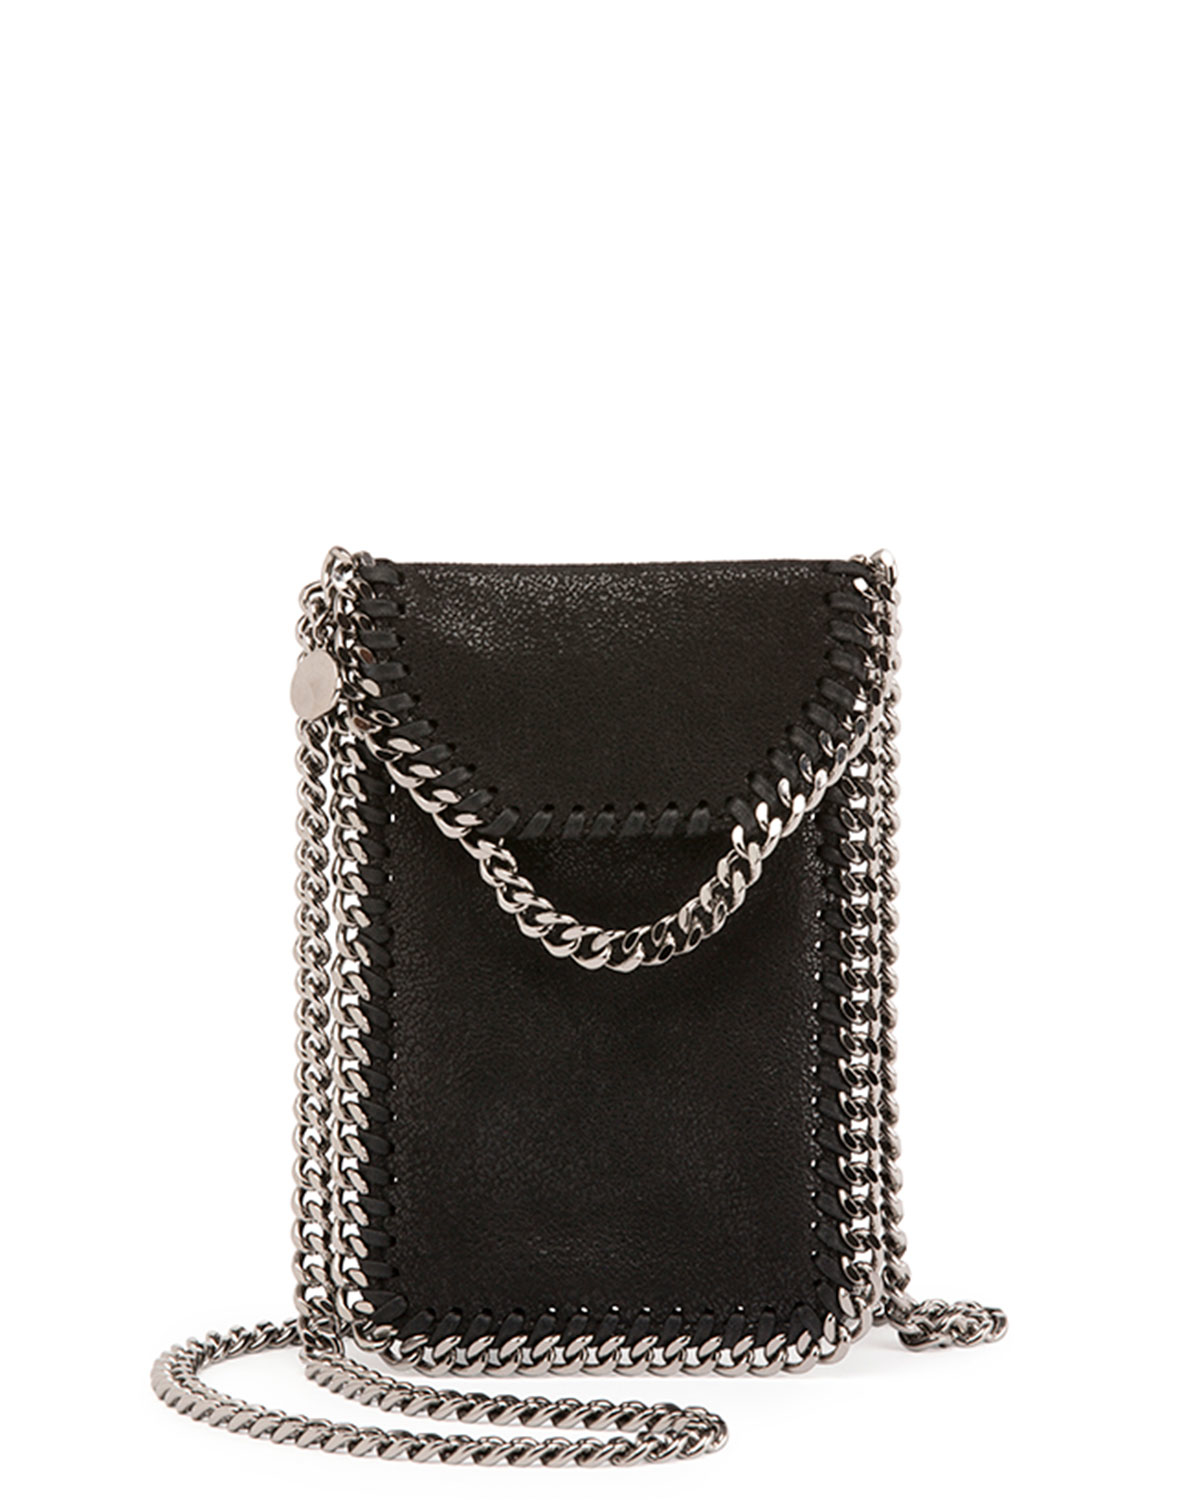 Lyst - Stella McCartney Crossbody Bag Phone Holder W chain Trim in Black f1b0412803a2f